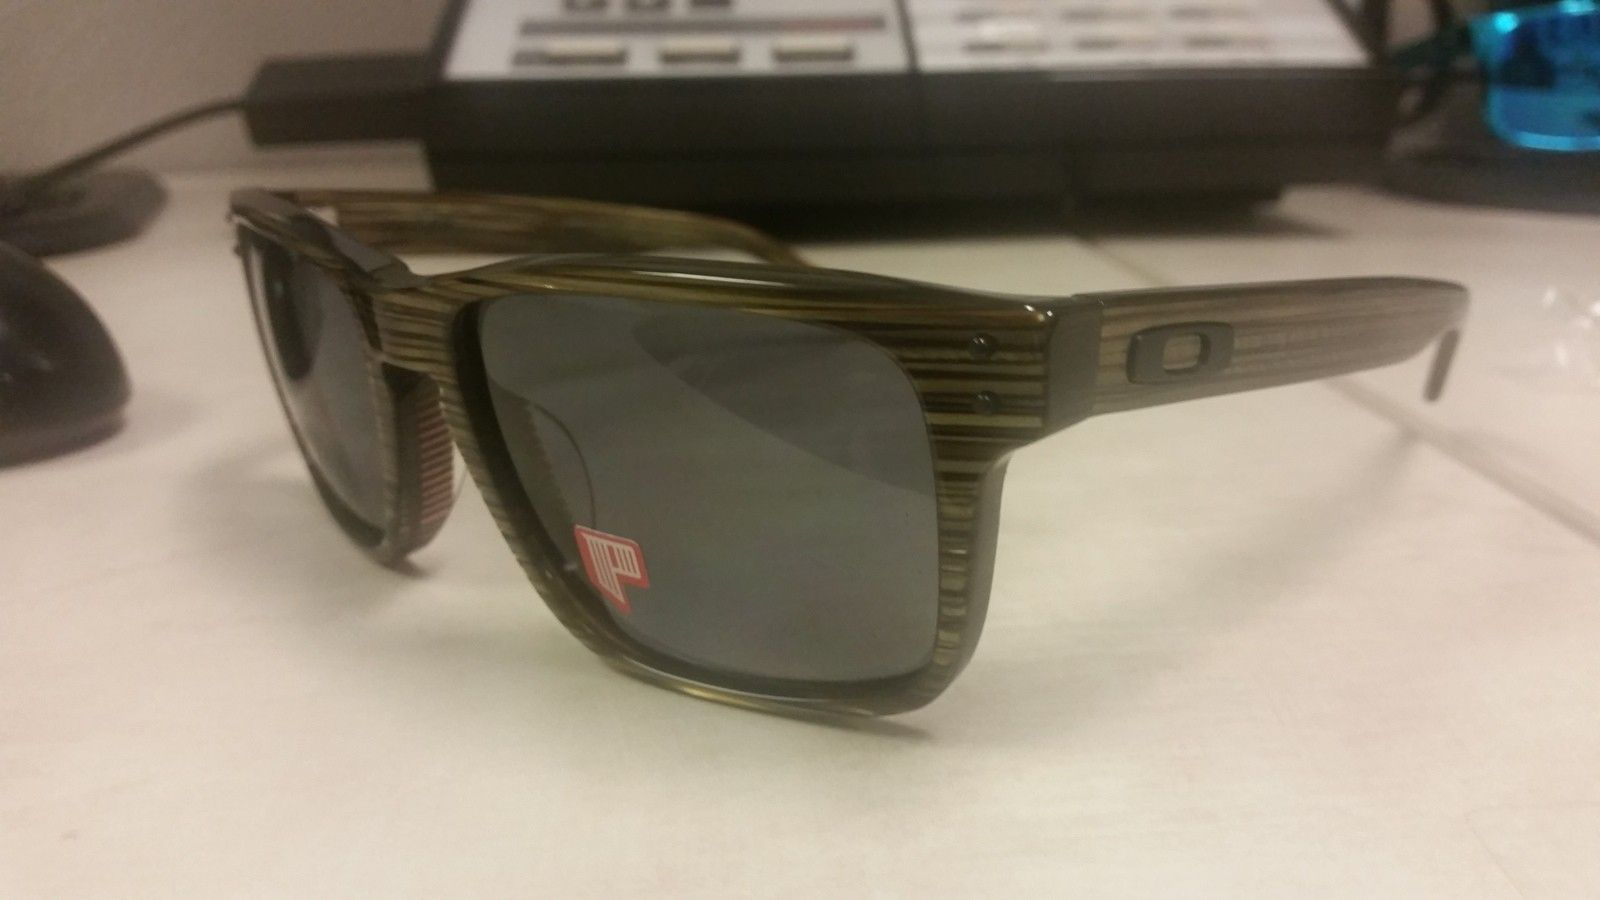 Brand new holbrook LX polarized - uploadfromtaptalk1424879949789.jpg